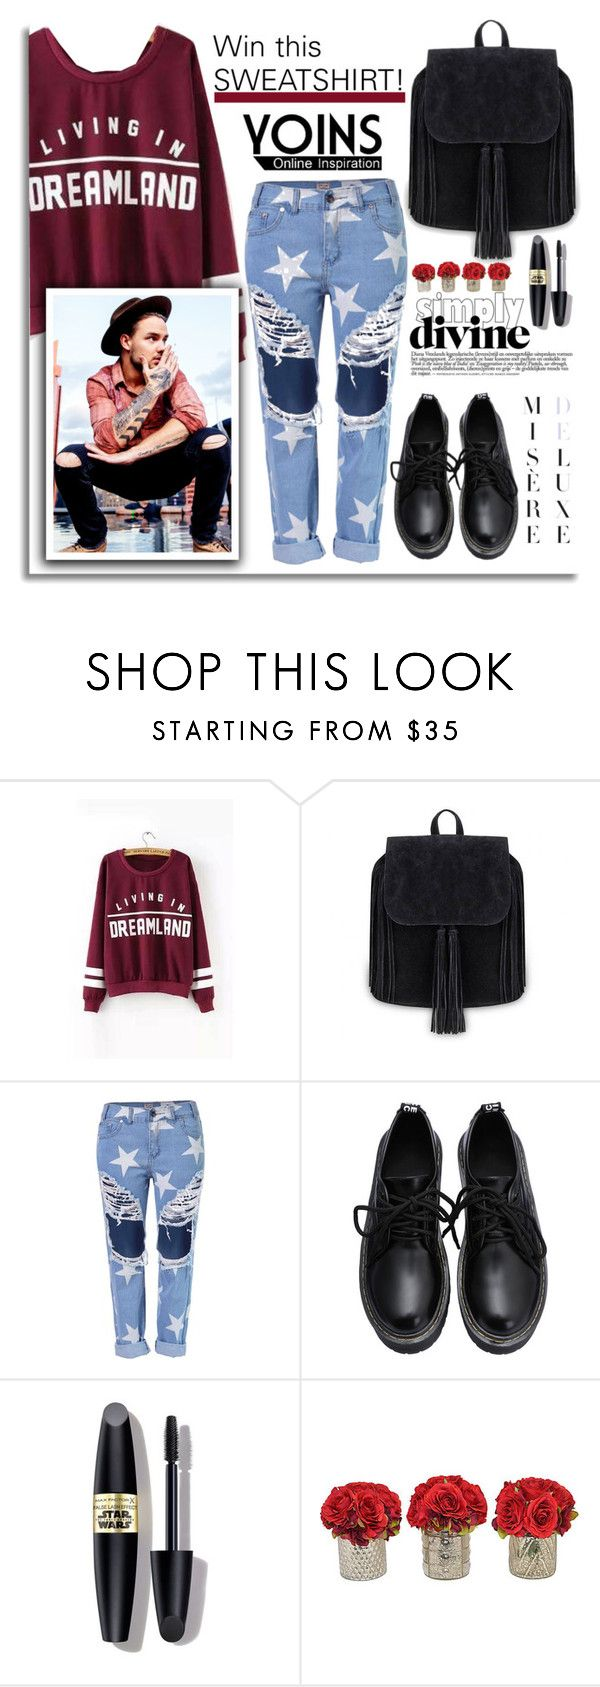 """""""Win Yoins Sweatshirt!"""" by dora04 ❤ liked on Polyvore featuring Max Factor, women's clothing, women's fashion, women, female, woman, misses, juniors, yoins and yoinscontest"""